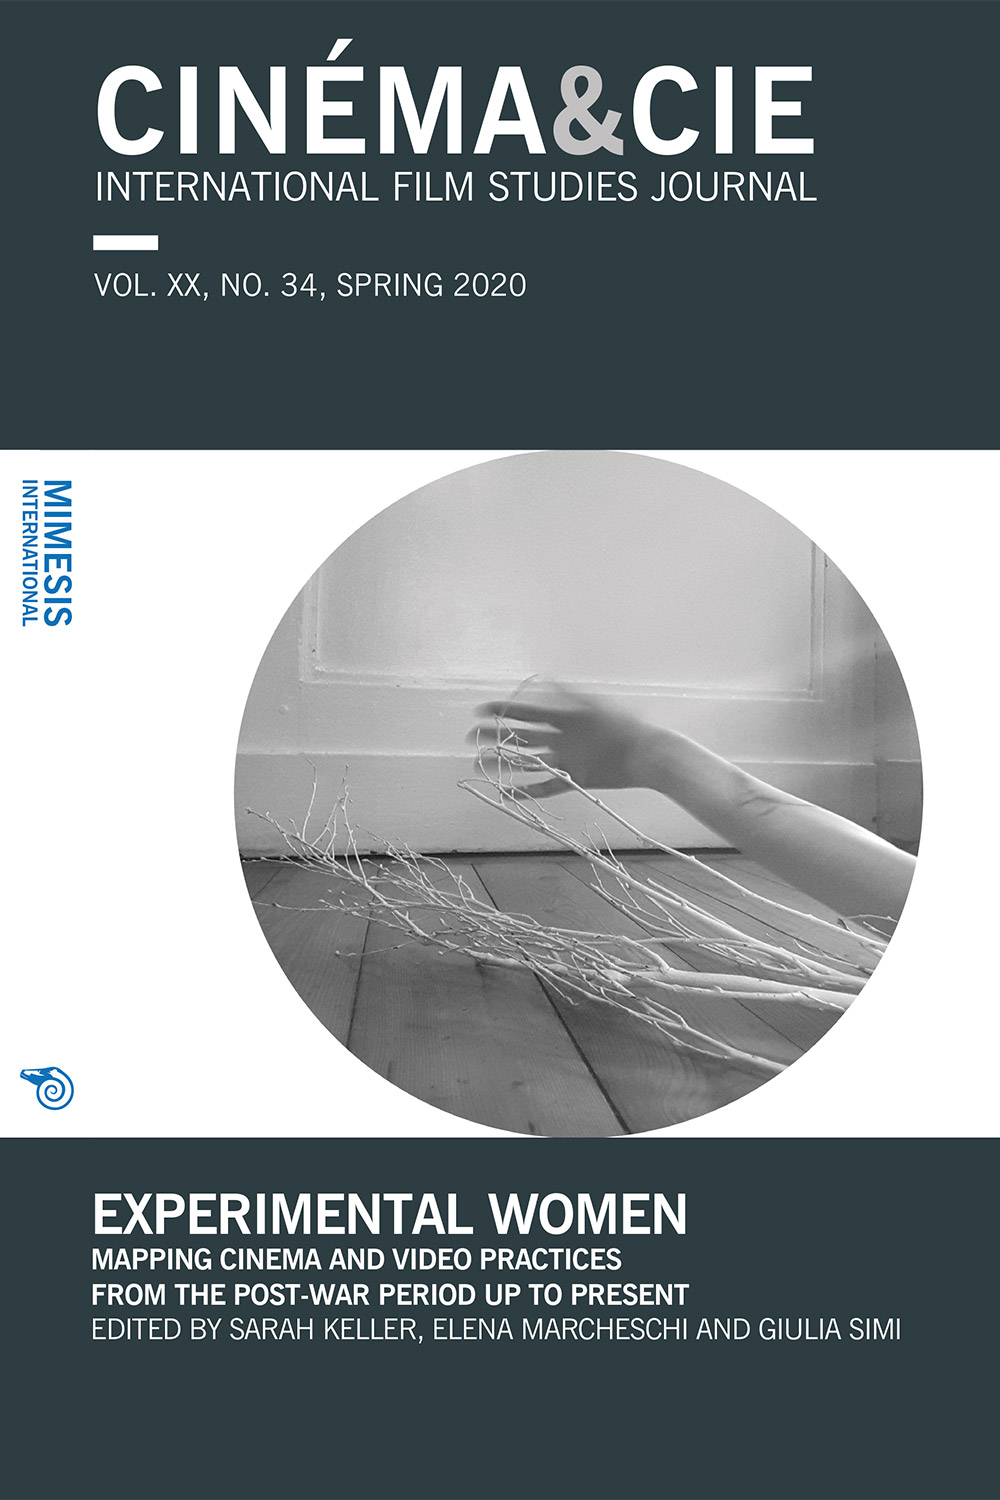 Cinéma&Cie 34: Experimental Women. Mapping Cinema and Video Practices From the Post-war Period Up to Present